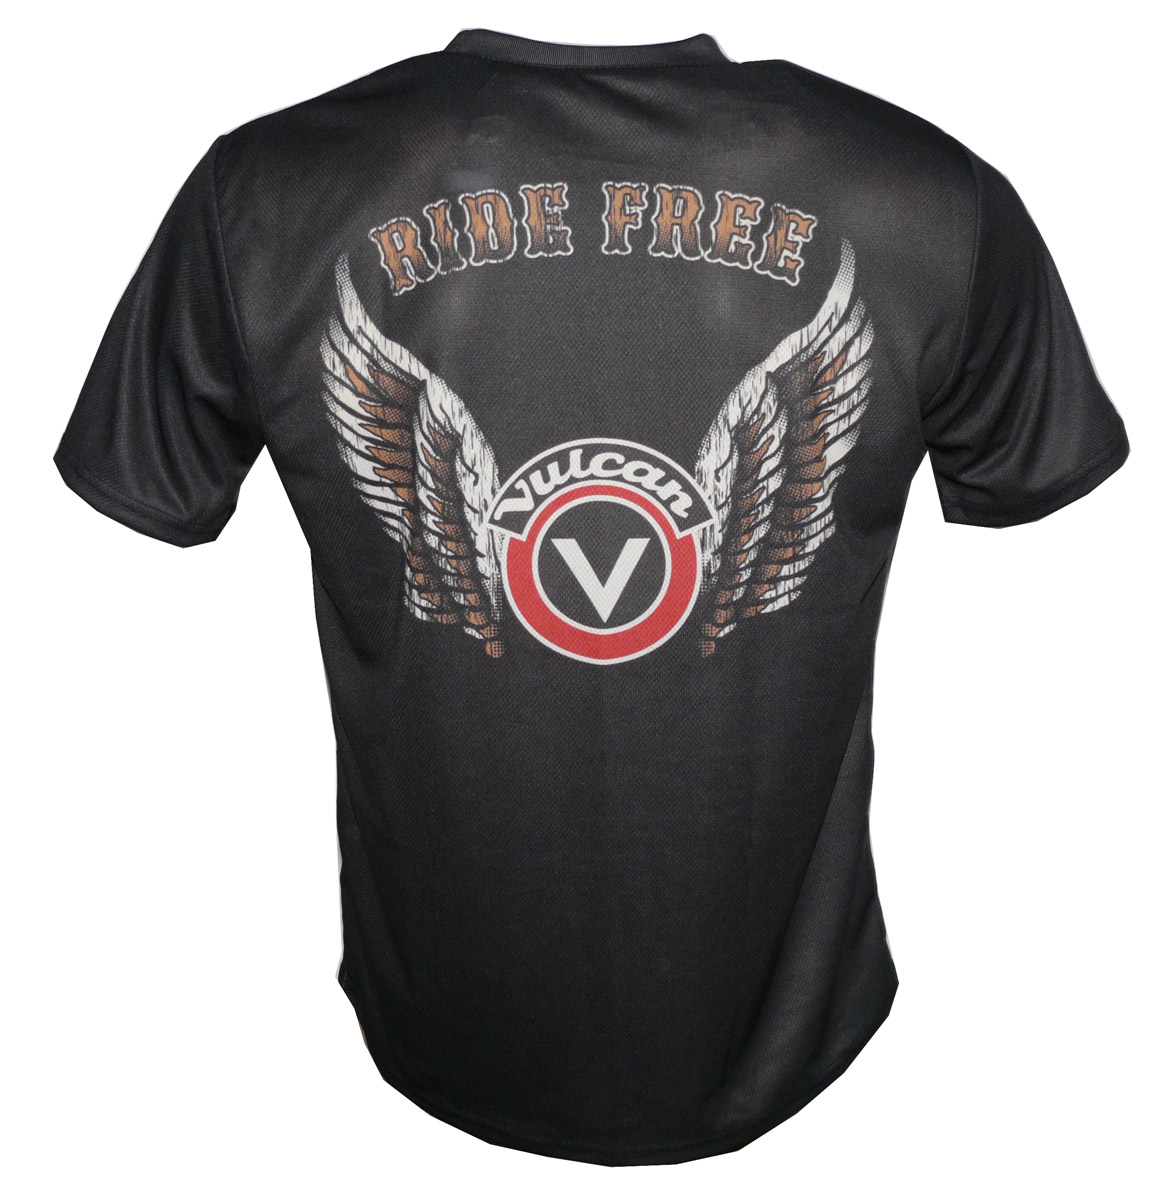 Kawasaki Vulcan 1700 T Shirt With Logo And All Over Printed Picture